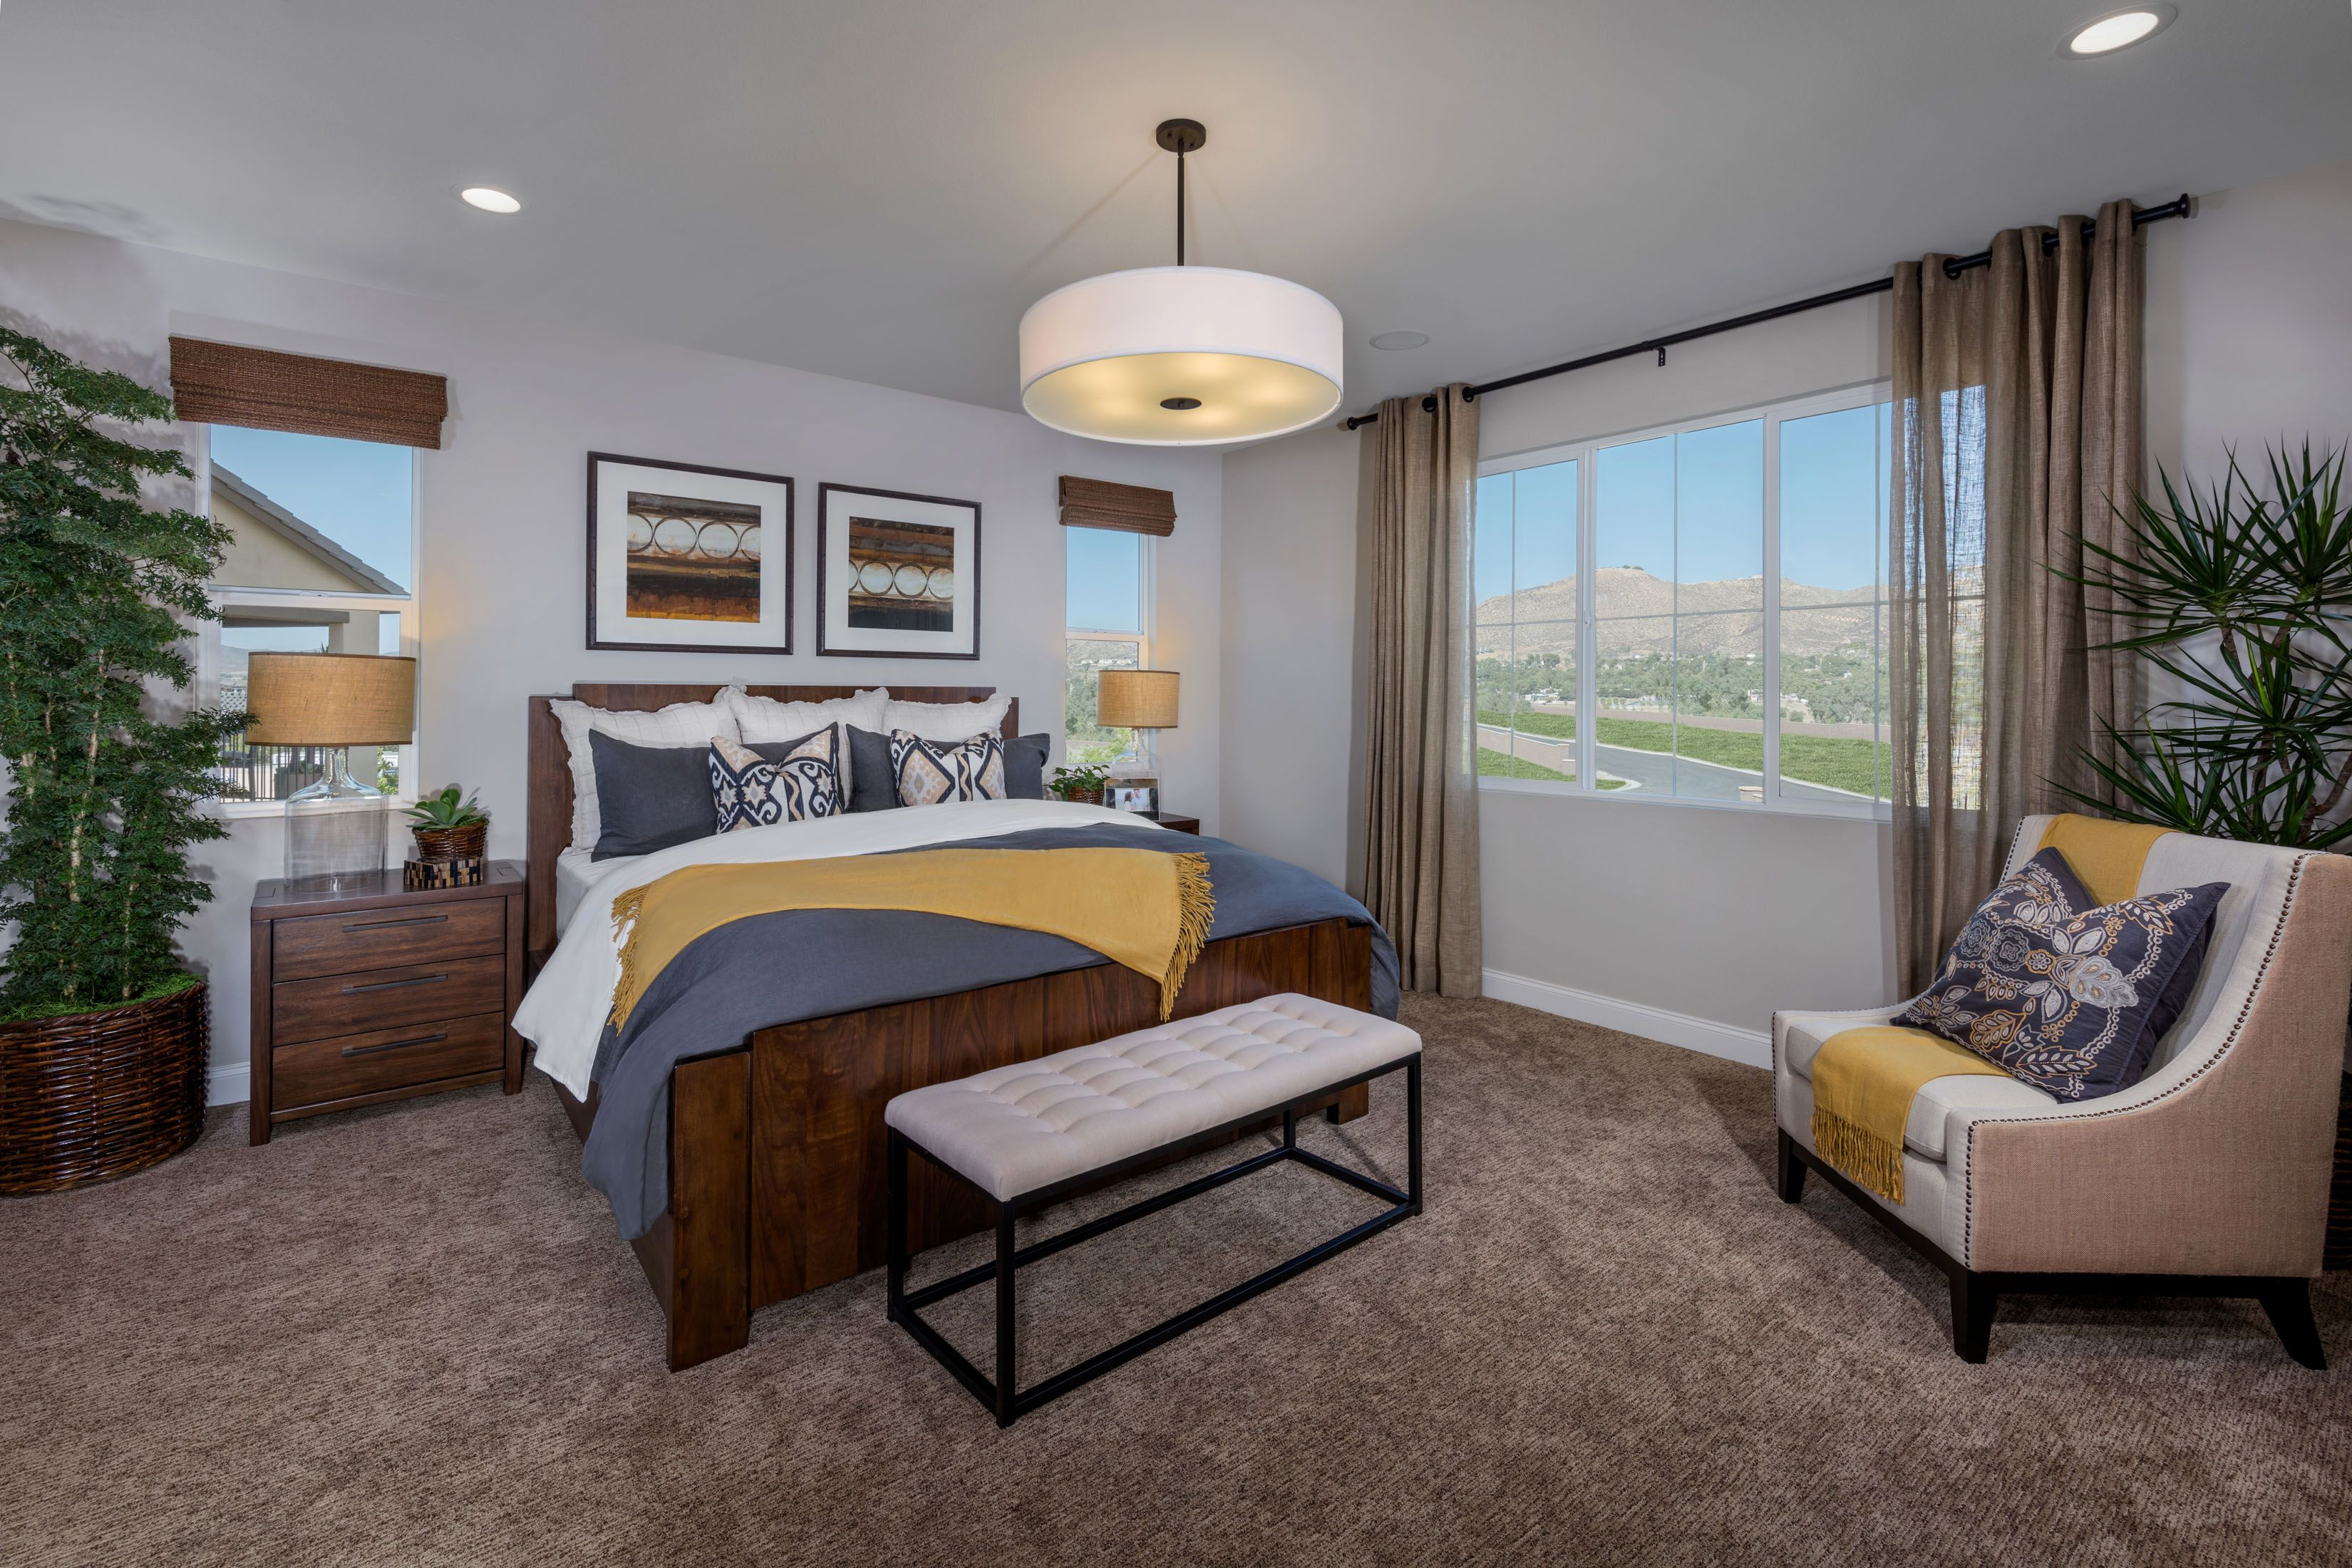 Residence 2 Master Bedroom New homes for sale, New homes